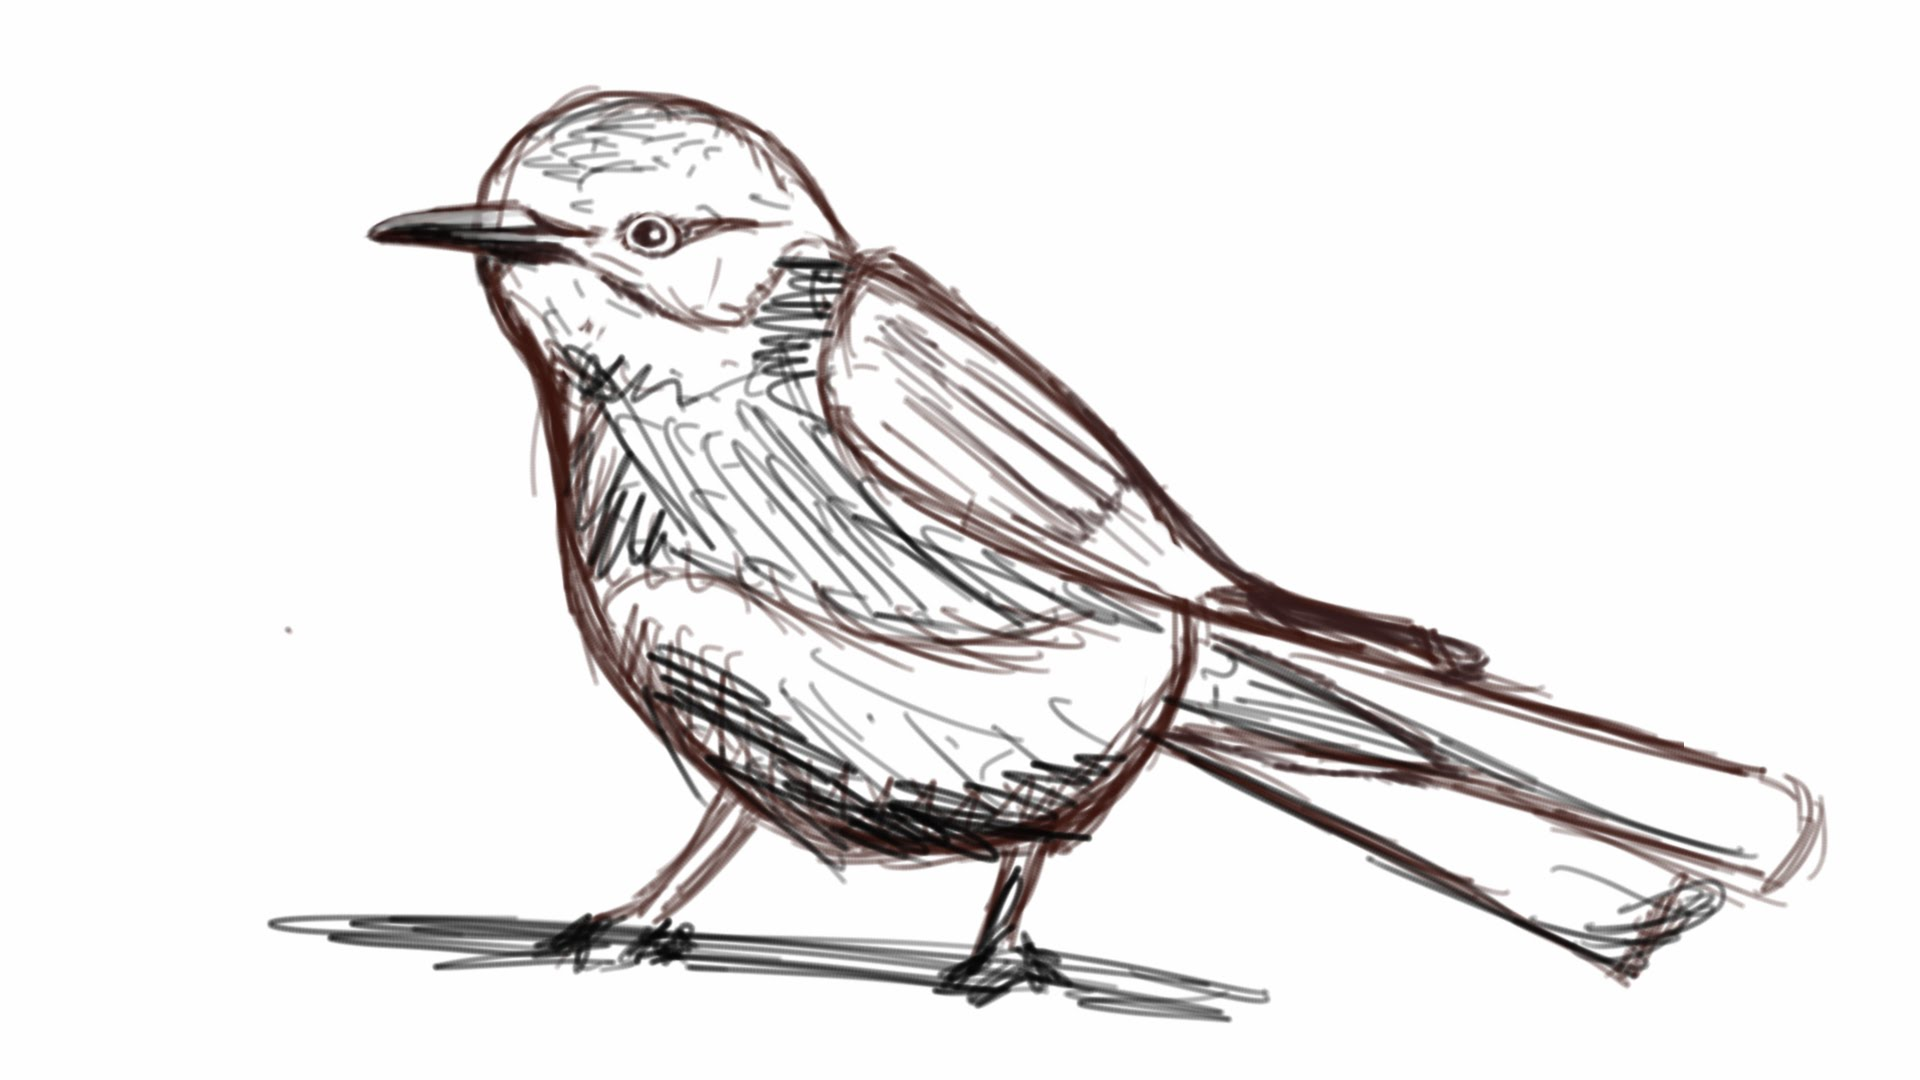 Drawn robin sparrow 3 minutes How in YouTube